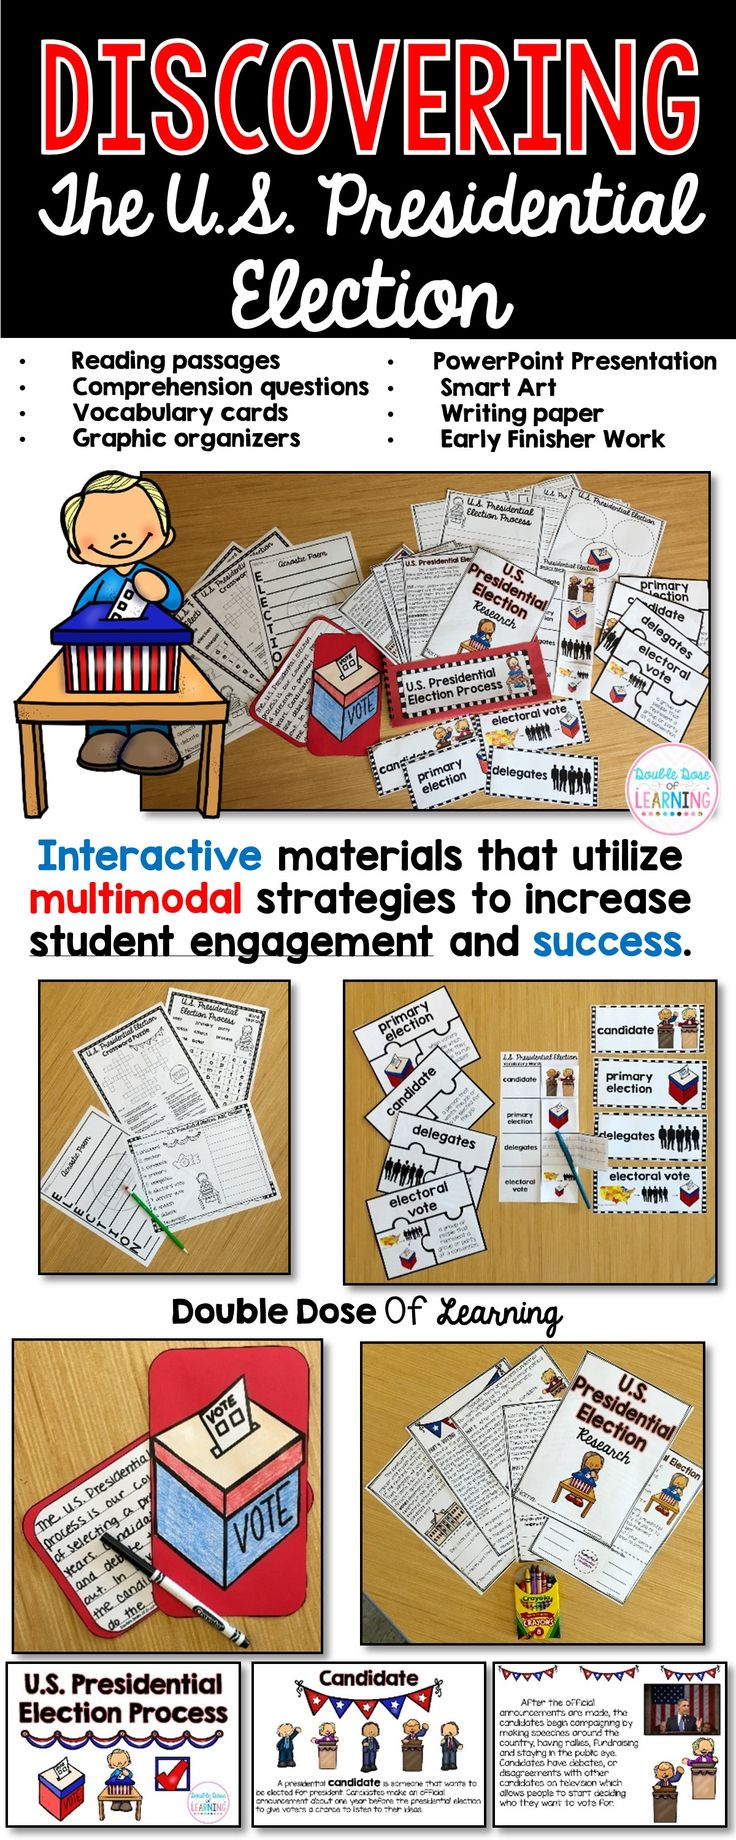 Get your students excited about the United States of America Presidential Election Process and 2016 Presidential Election with this comprehensive pocketbook unit. The materials in this unit are interactive and utilize multimodal strategies to increase student engagement and outcomes. The unit integrates technology, vocabulary, writing, art, reading strategies and more!